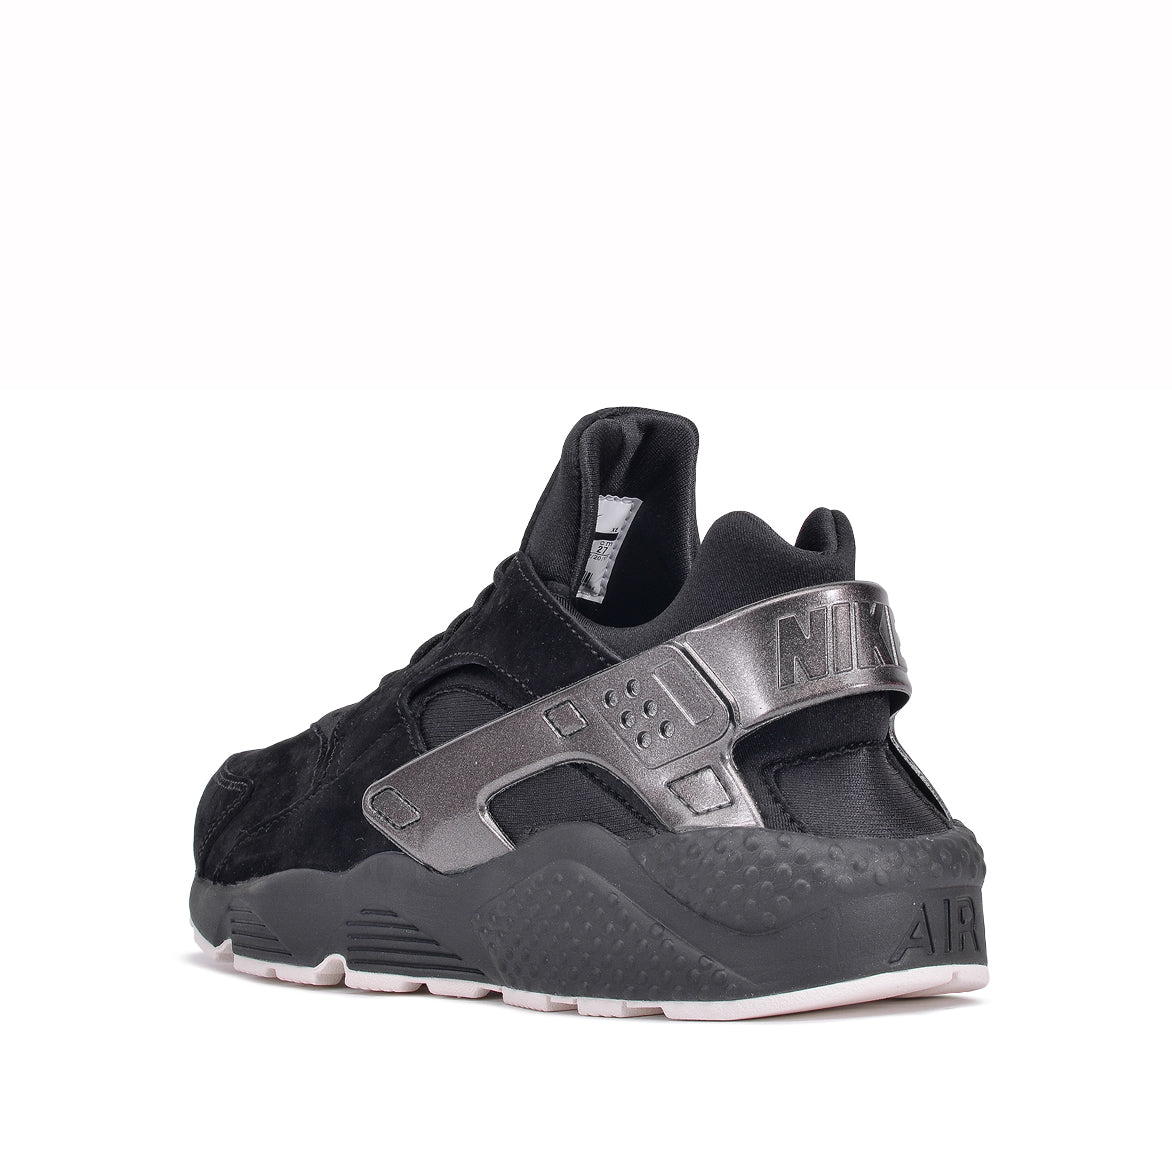 d07e822ef719 ... AIR HUARACHE RUN PRM - BLACK   METALLIC BLACK ...